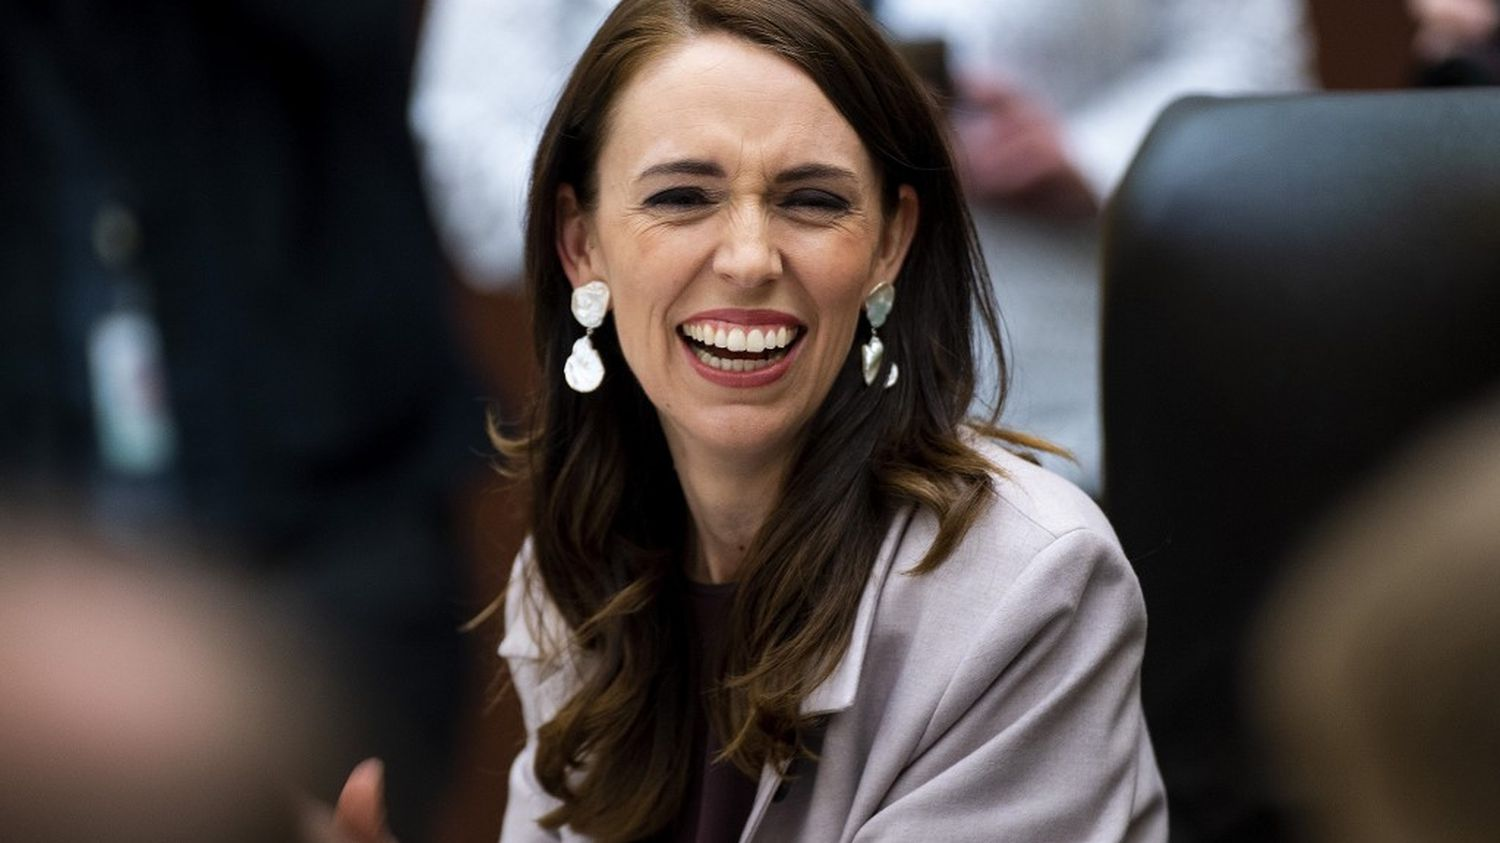 New Zealand's Ardern increases parliamentary majority after final vote tally